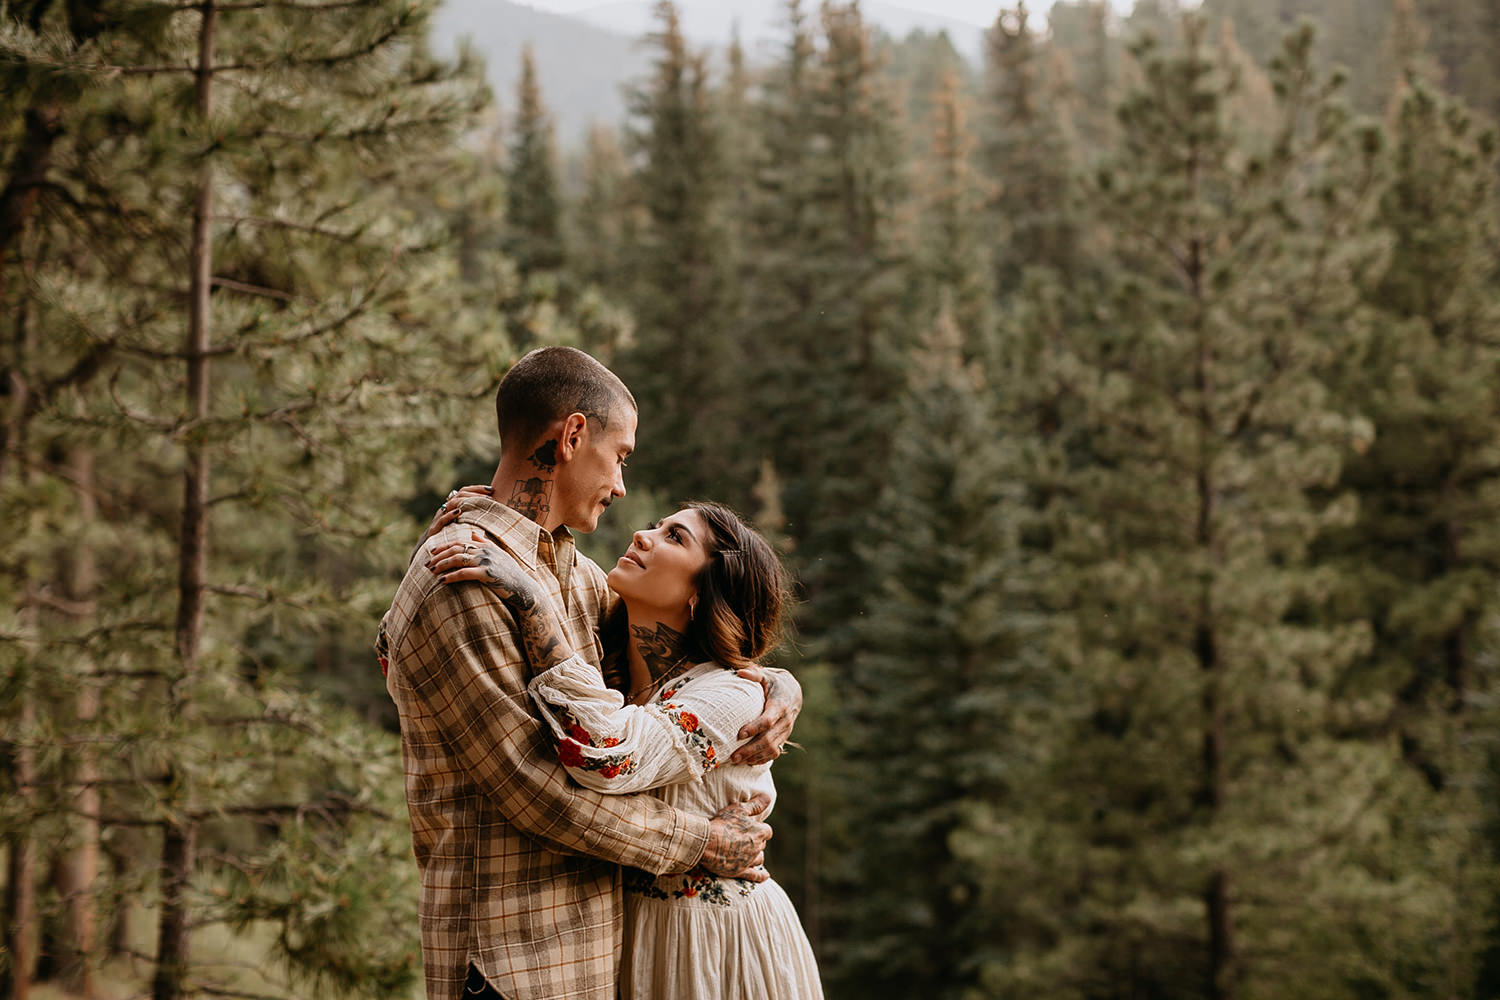 Bailey Colorado Denver Wedding Engagement Photographer Liz Osban Cheyenne Wyoming Mountain Elopement Boho bohemian vintage film tattoo non traditional tattooed rock and roll 34.jpg